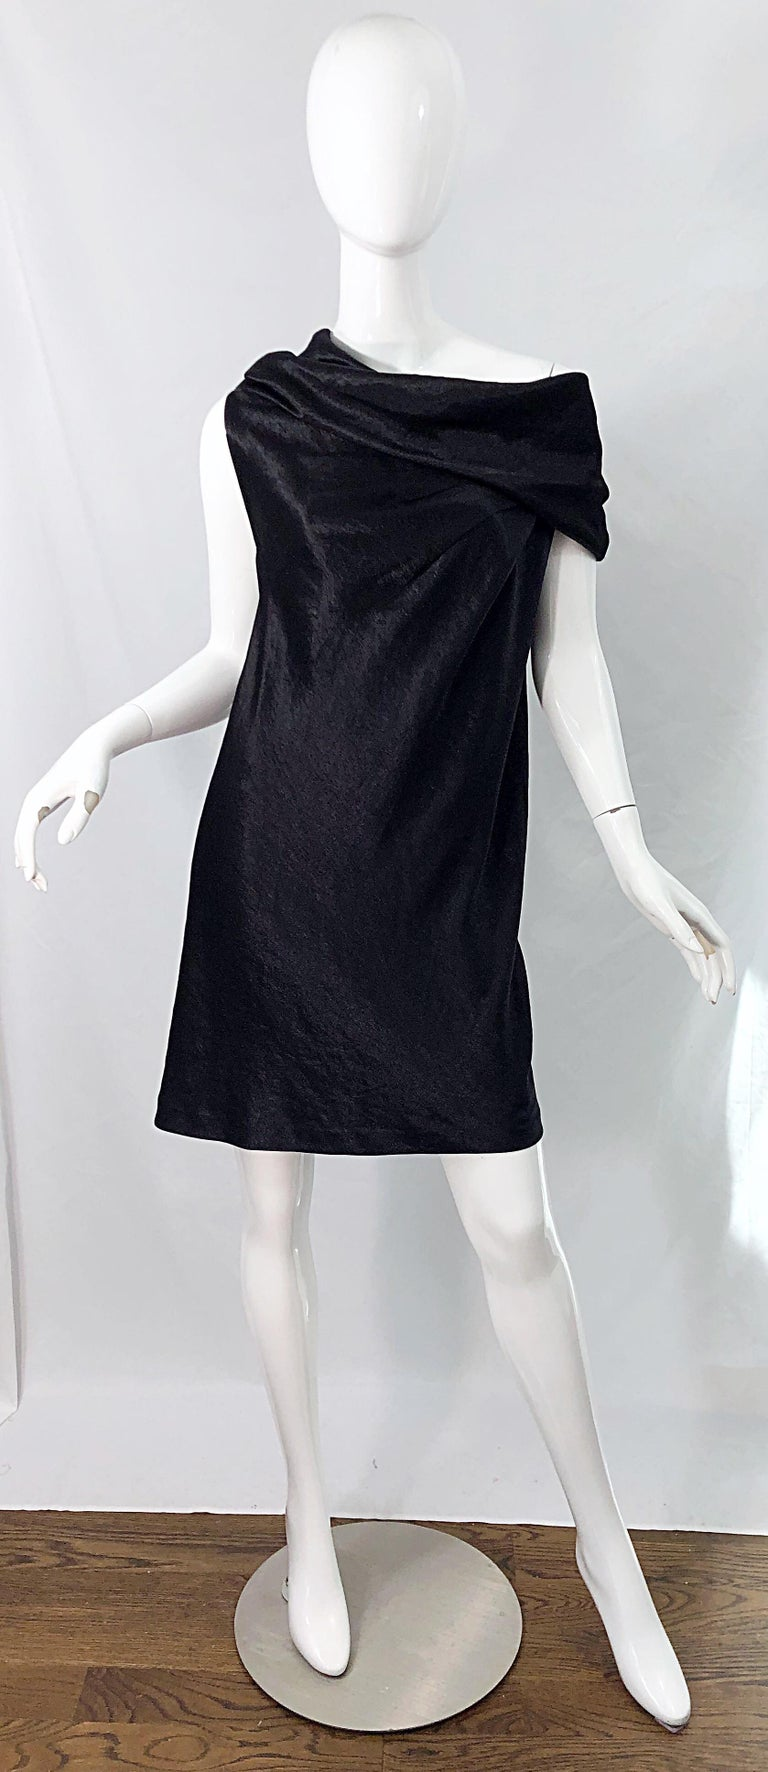 Chic brand new with original store tags late 90s DONNA KARAN black metallic rayon off-shoulder dress ! Features a soft luxurious textured metallic rayon - the tag describes it as a metallic satin textured rayon. This beauty simply slips over the